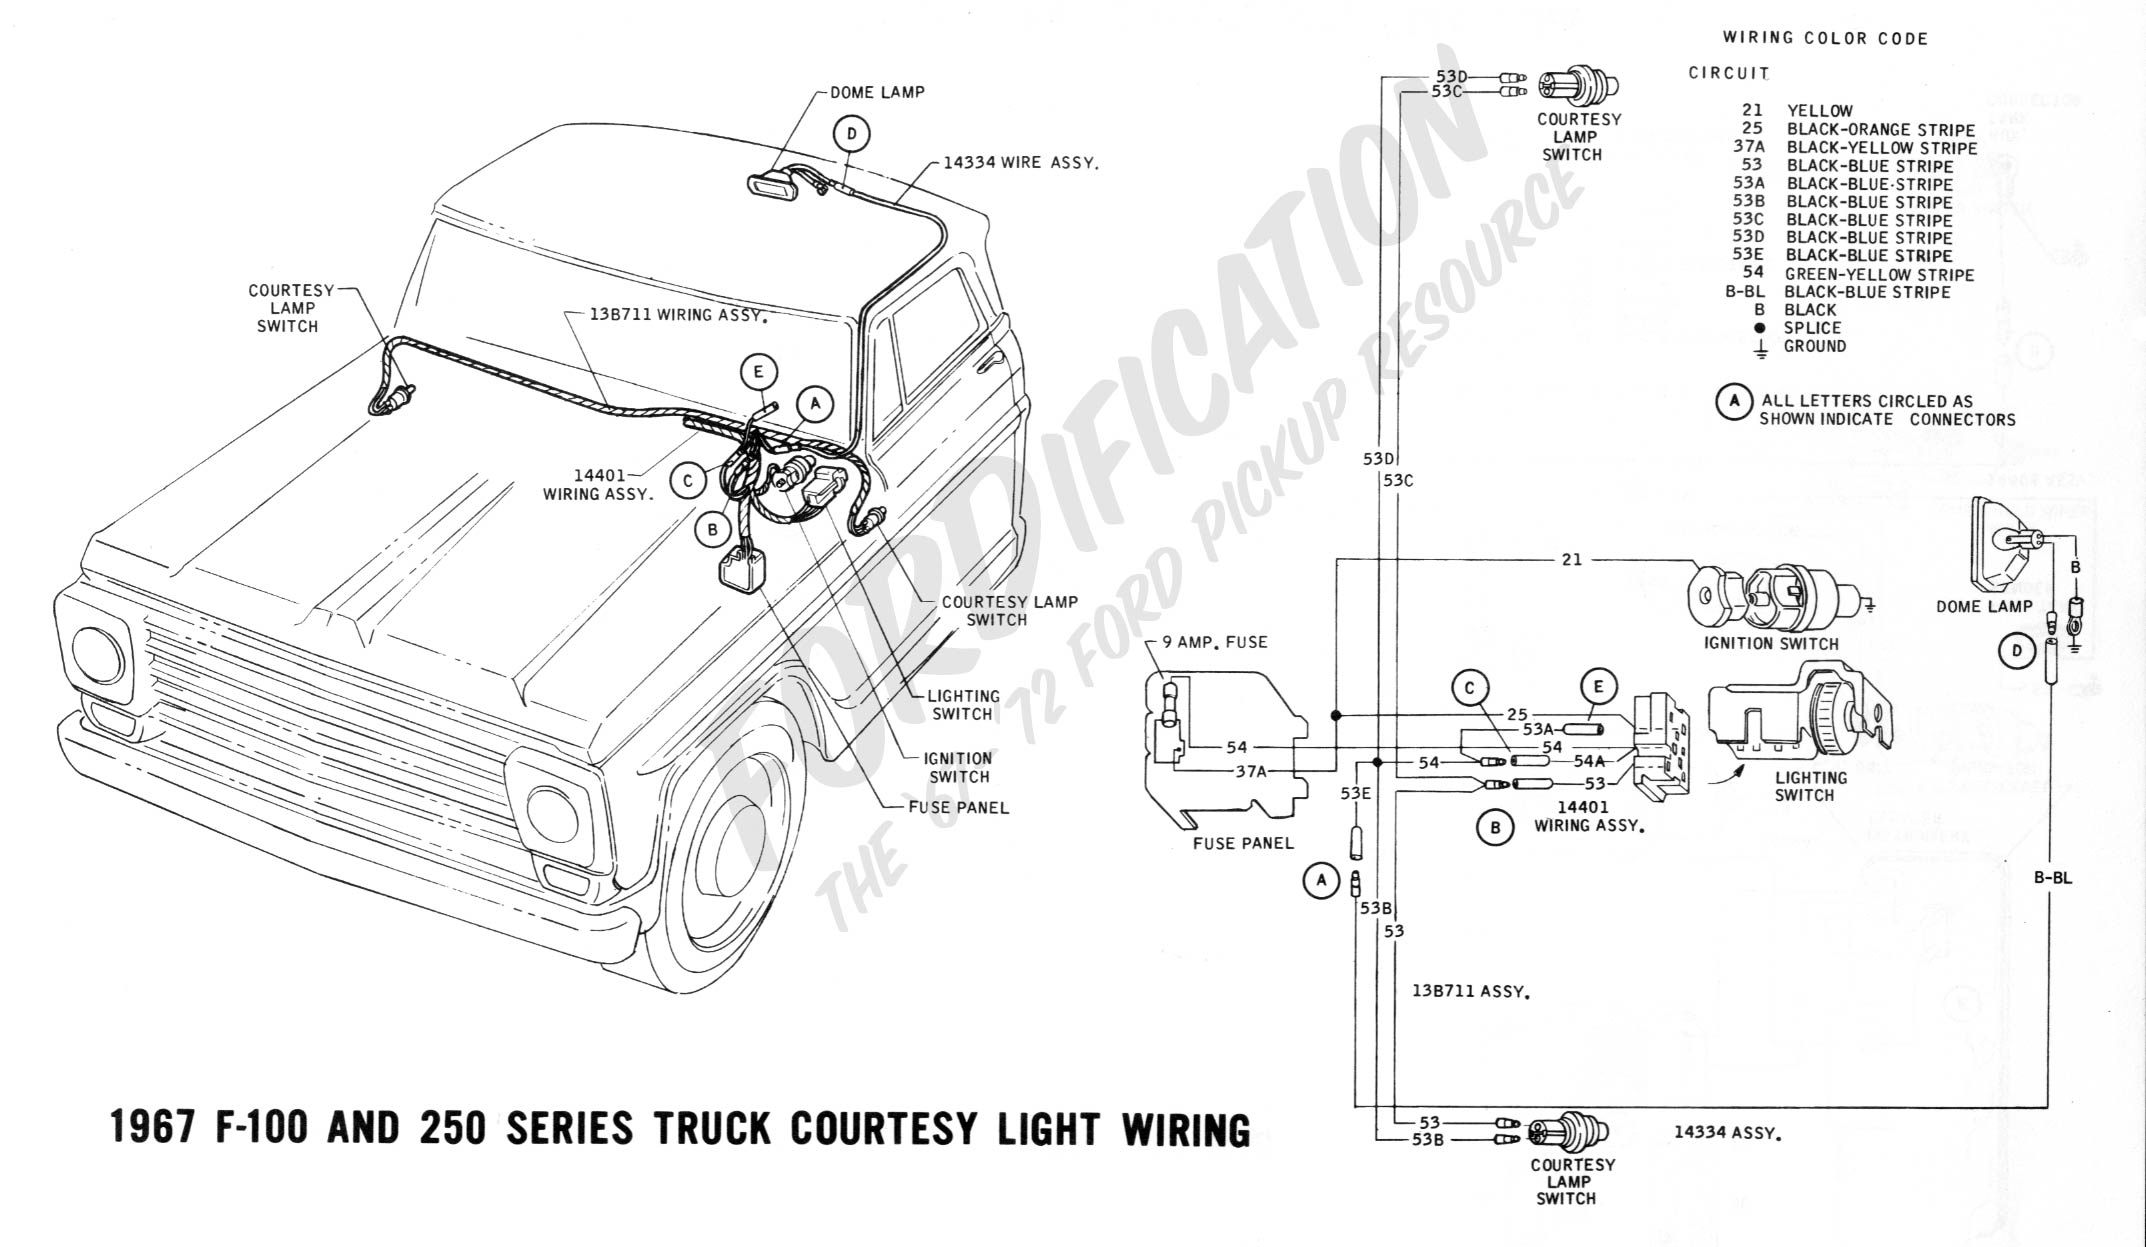 wiring 1967courtesylight ford truck technical drawings and schematics section h wiring 1961 ford truck wiring diagram at gsmportal.co